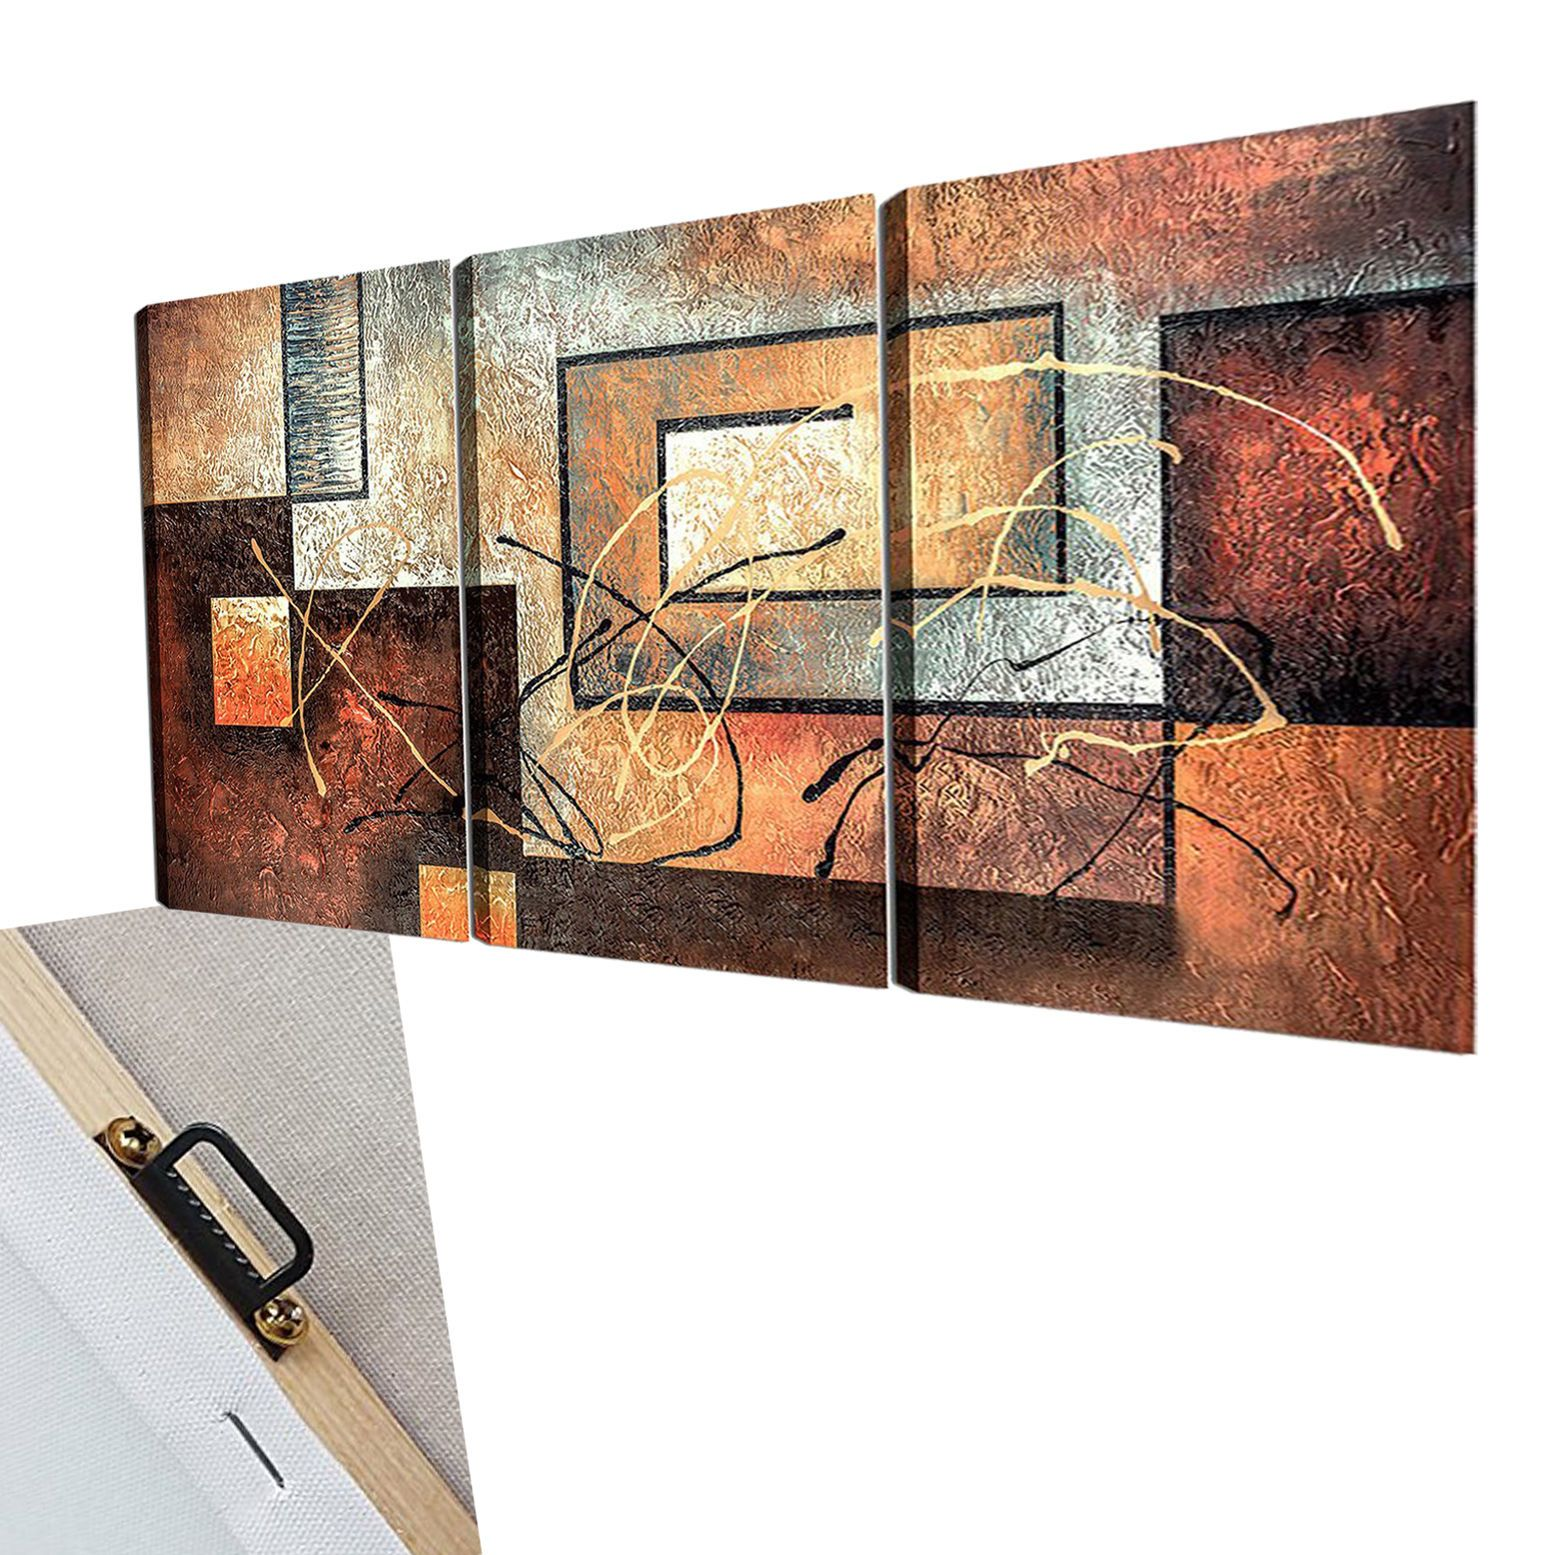 panels wall art framed canvas home decor abstract painting modern